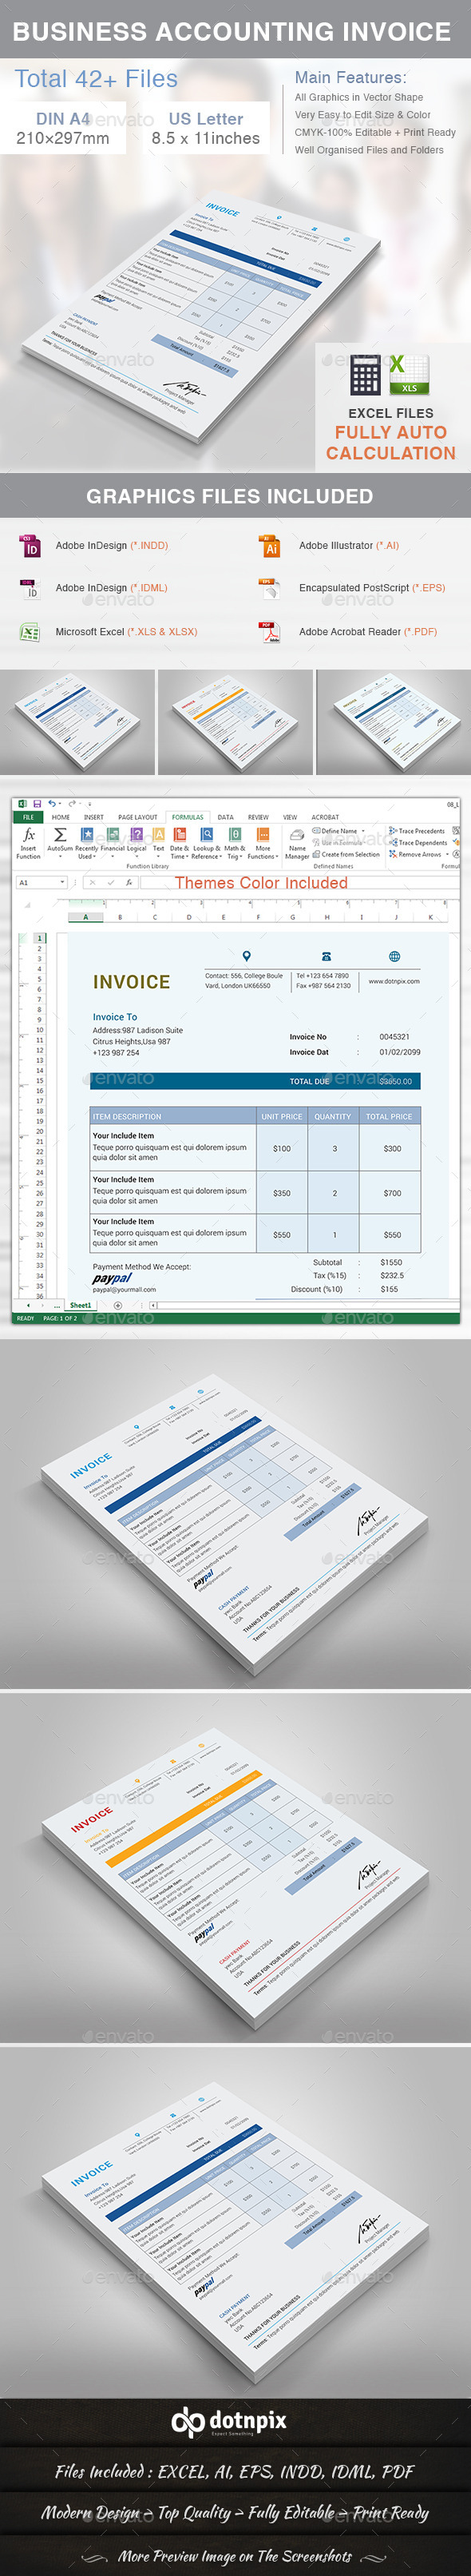 Business Accounting Invoice - Proposals & Invoices Stationery